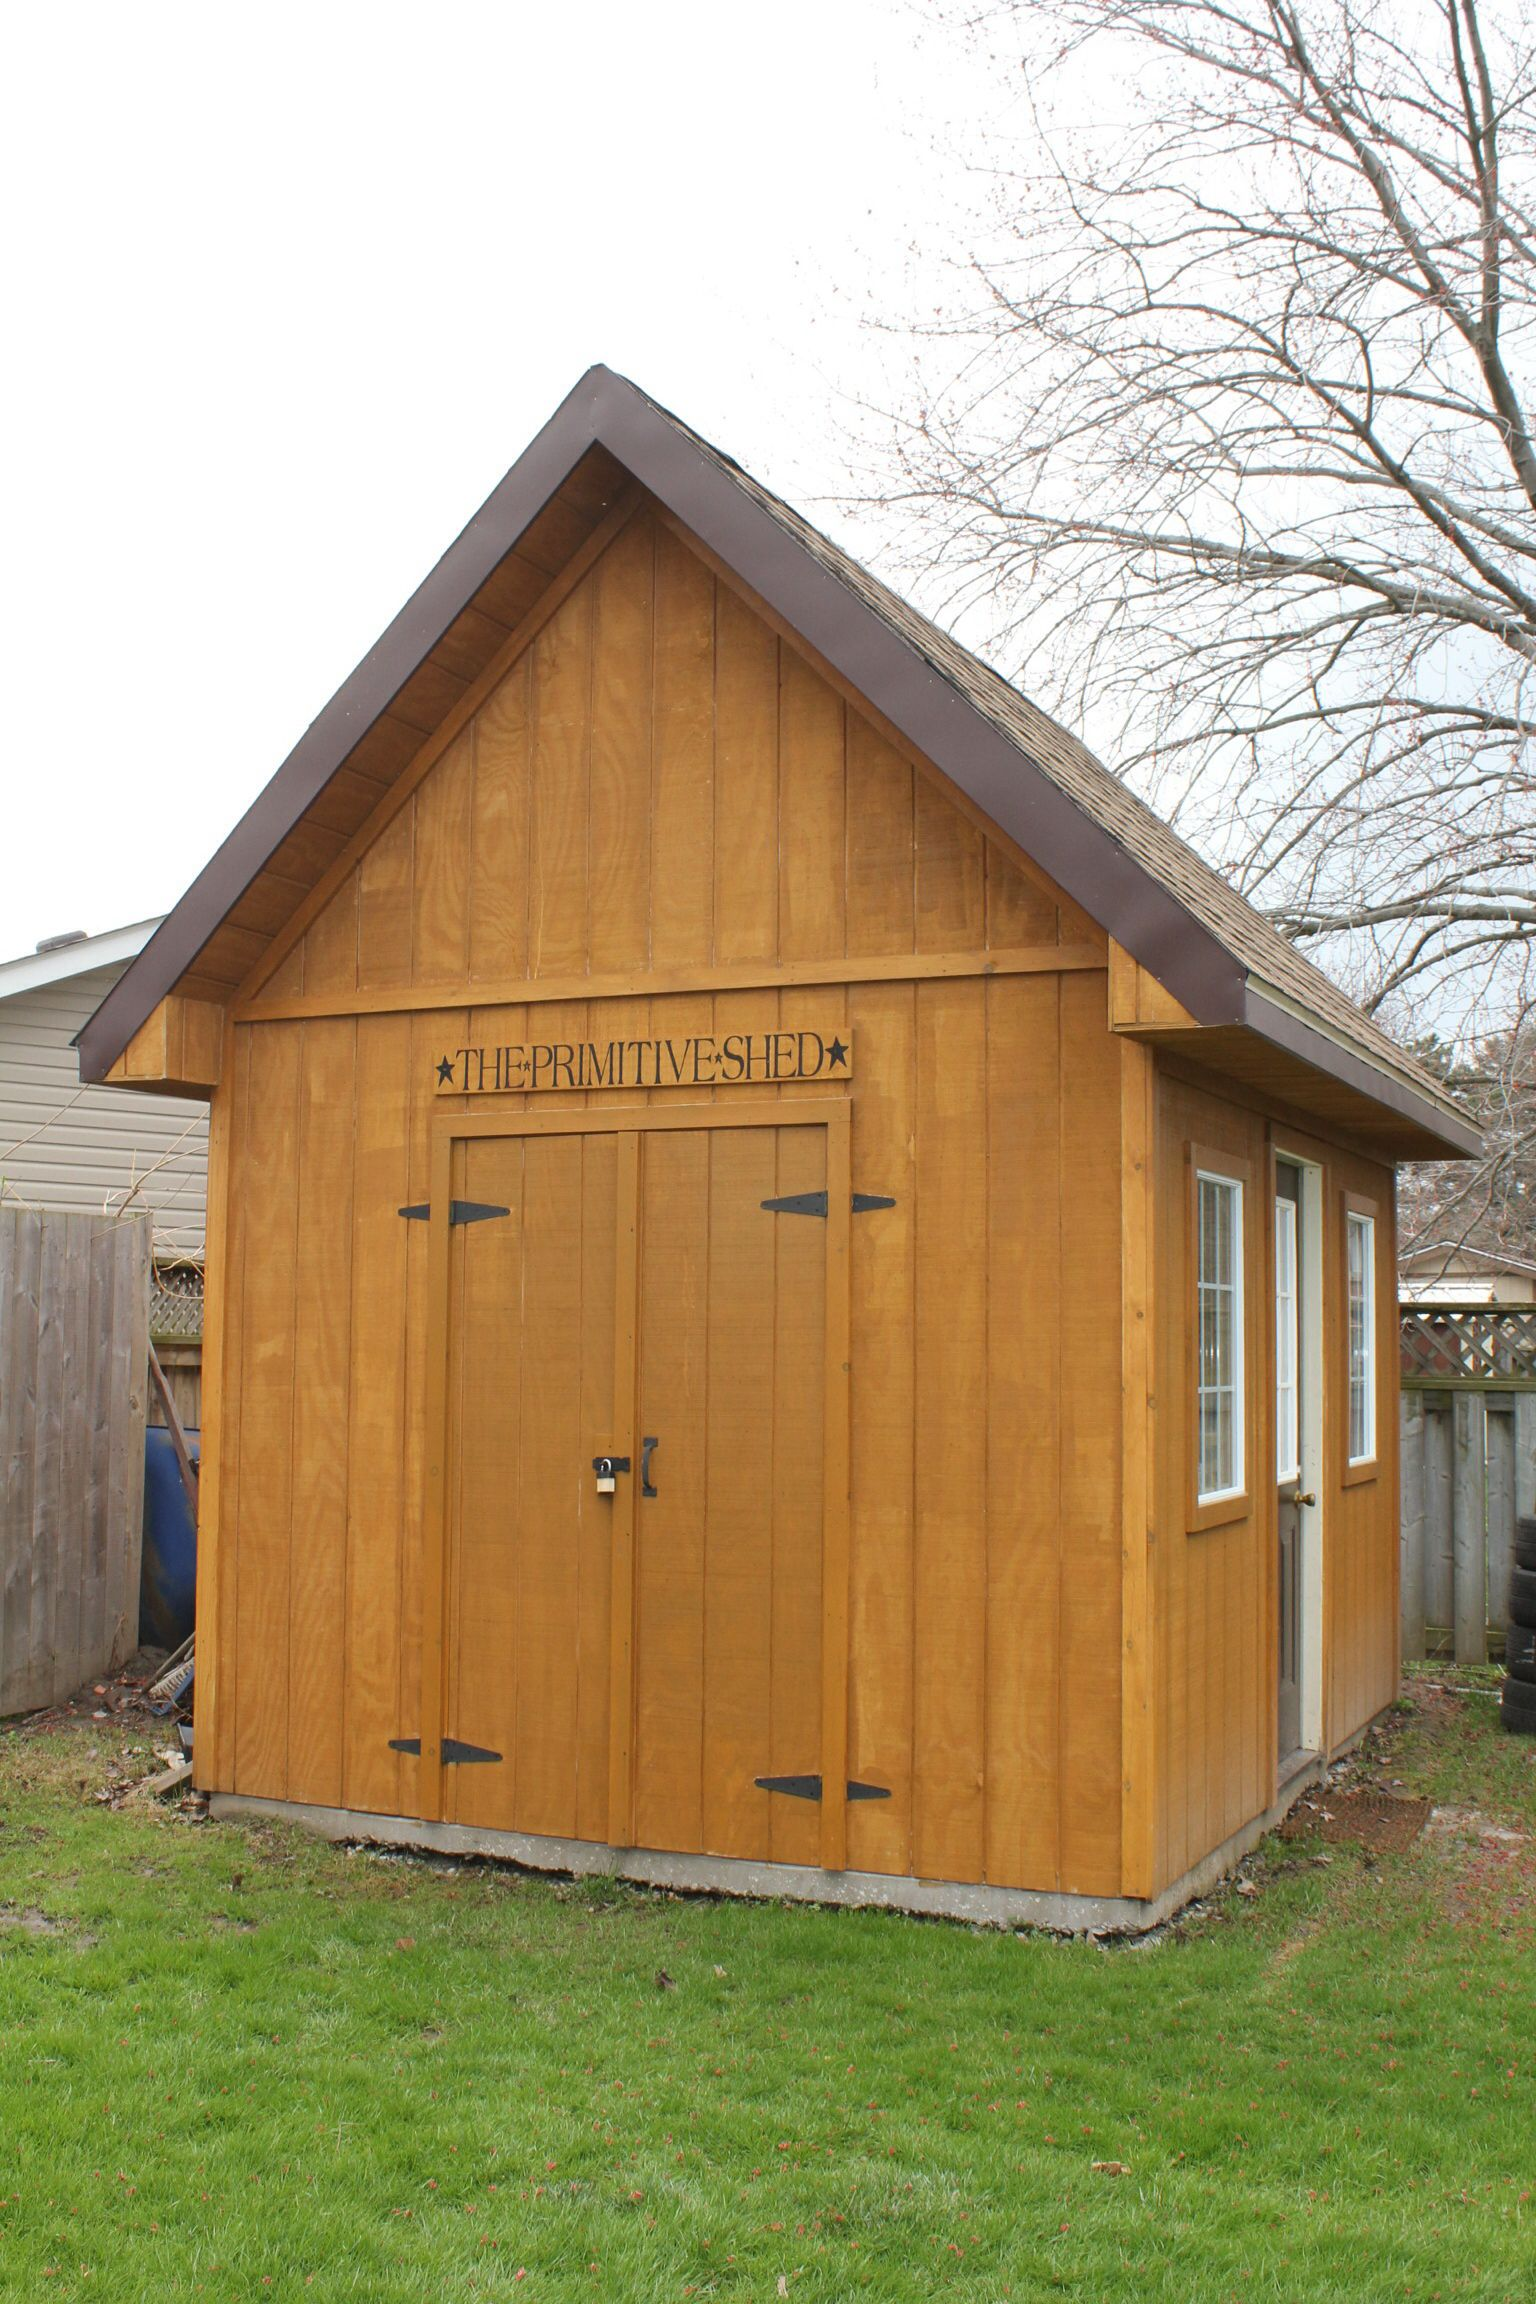 Spring has finally arrived at the primitive shed st catharines spring has finally arrived at the primitive shed st catharinesasses have started the primitive shed pinterest st catharines and primitives solutioingenieria Gallery